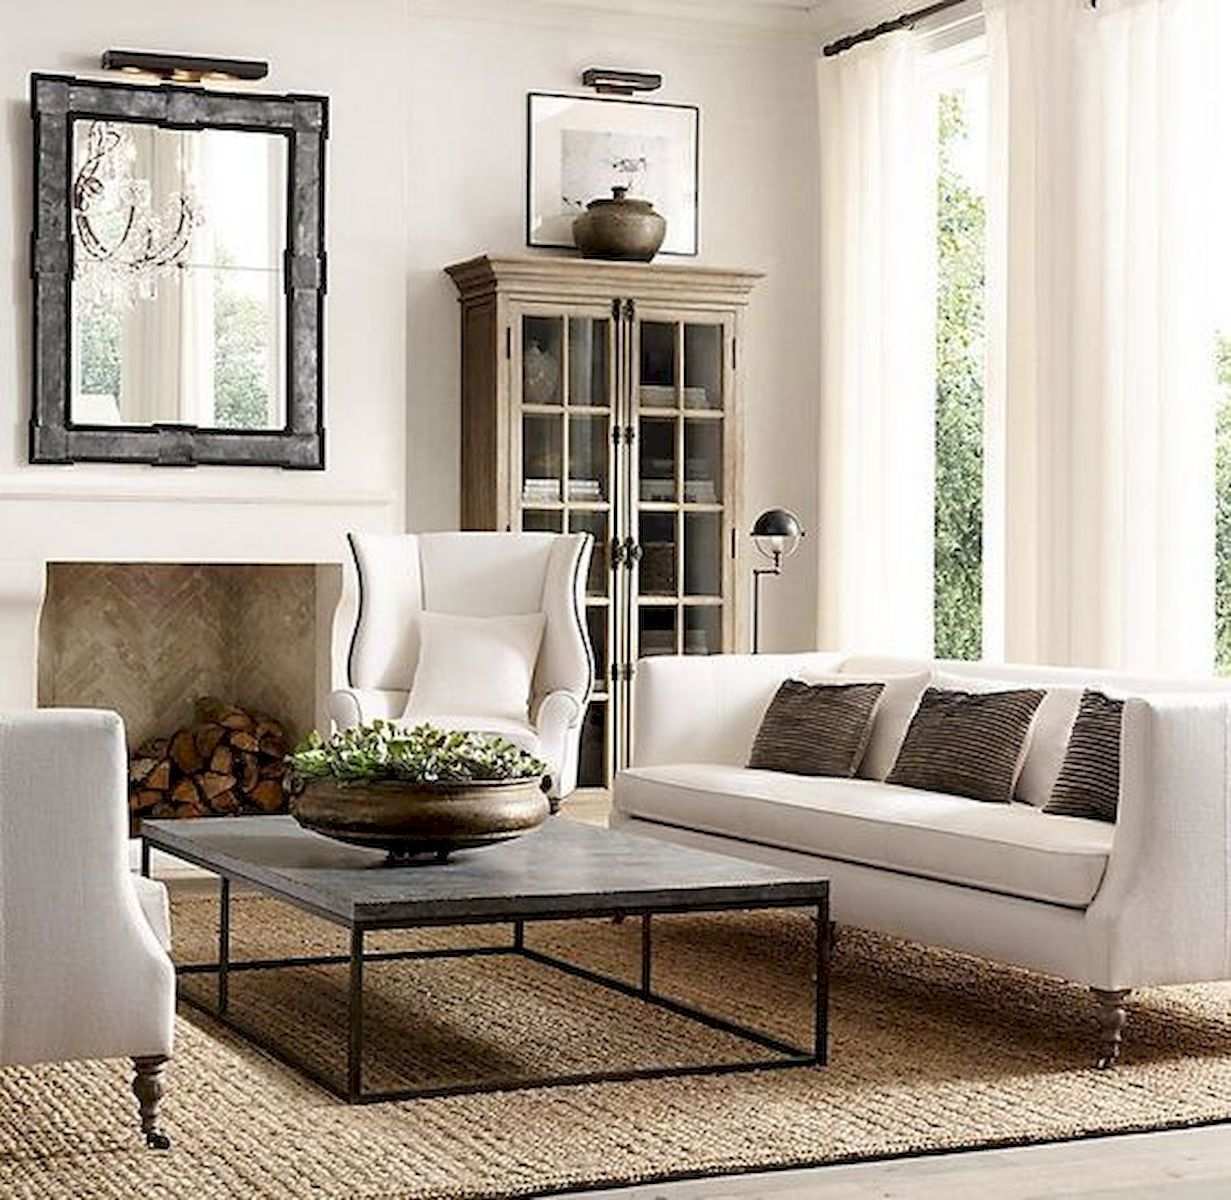 45 Awesome Small Apartment Living Room Design and Decor ... on Awesome Apartment Budget Apartment Living Room Ideas  id=71036